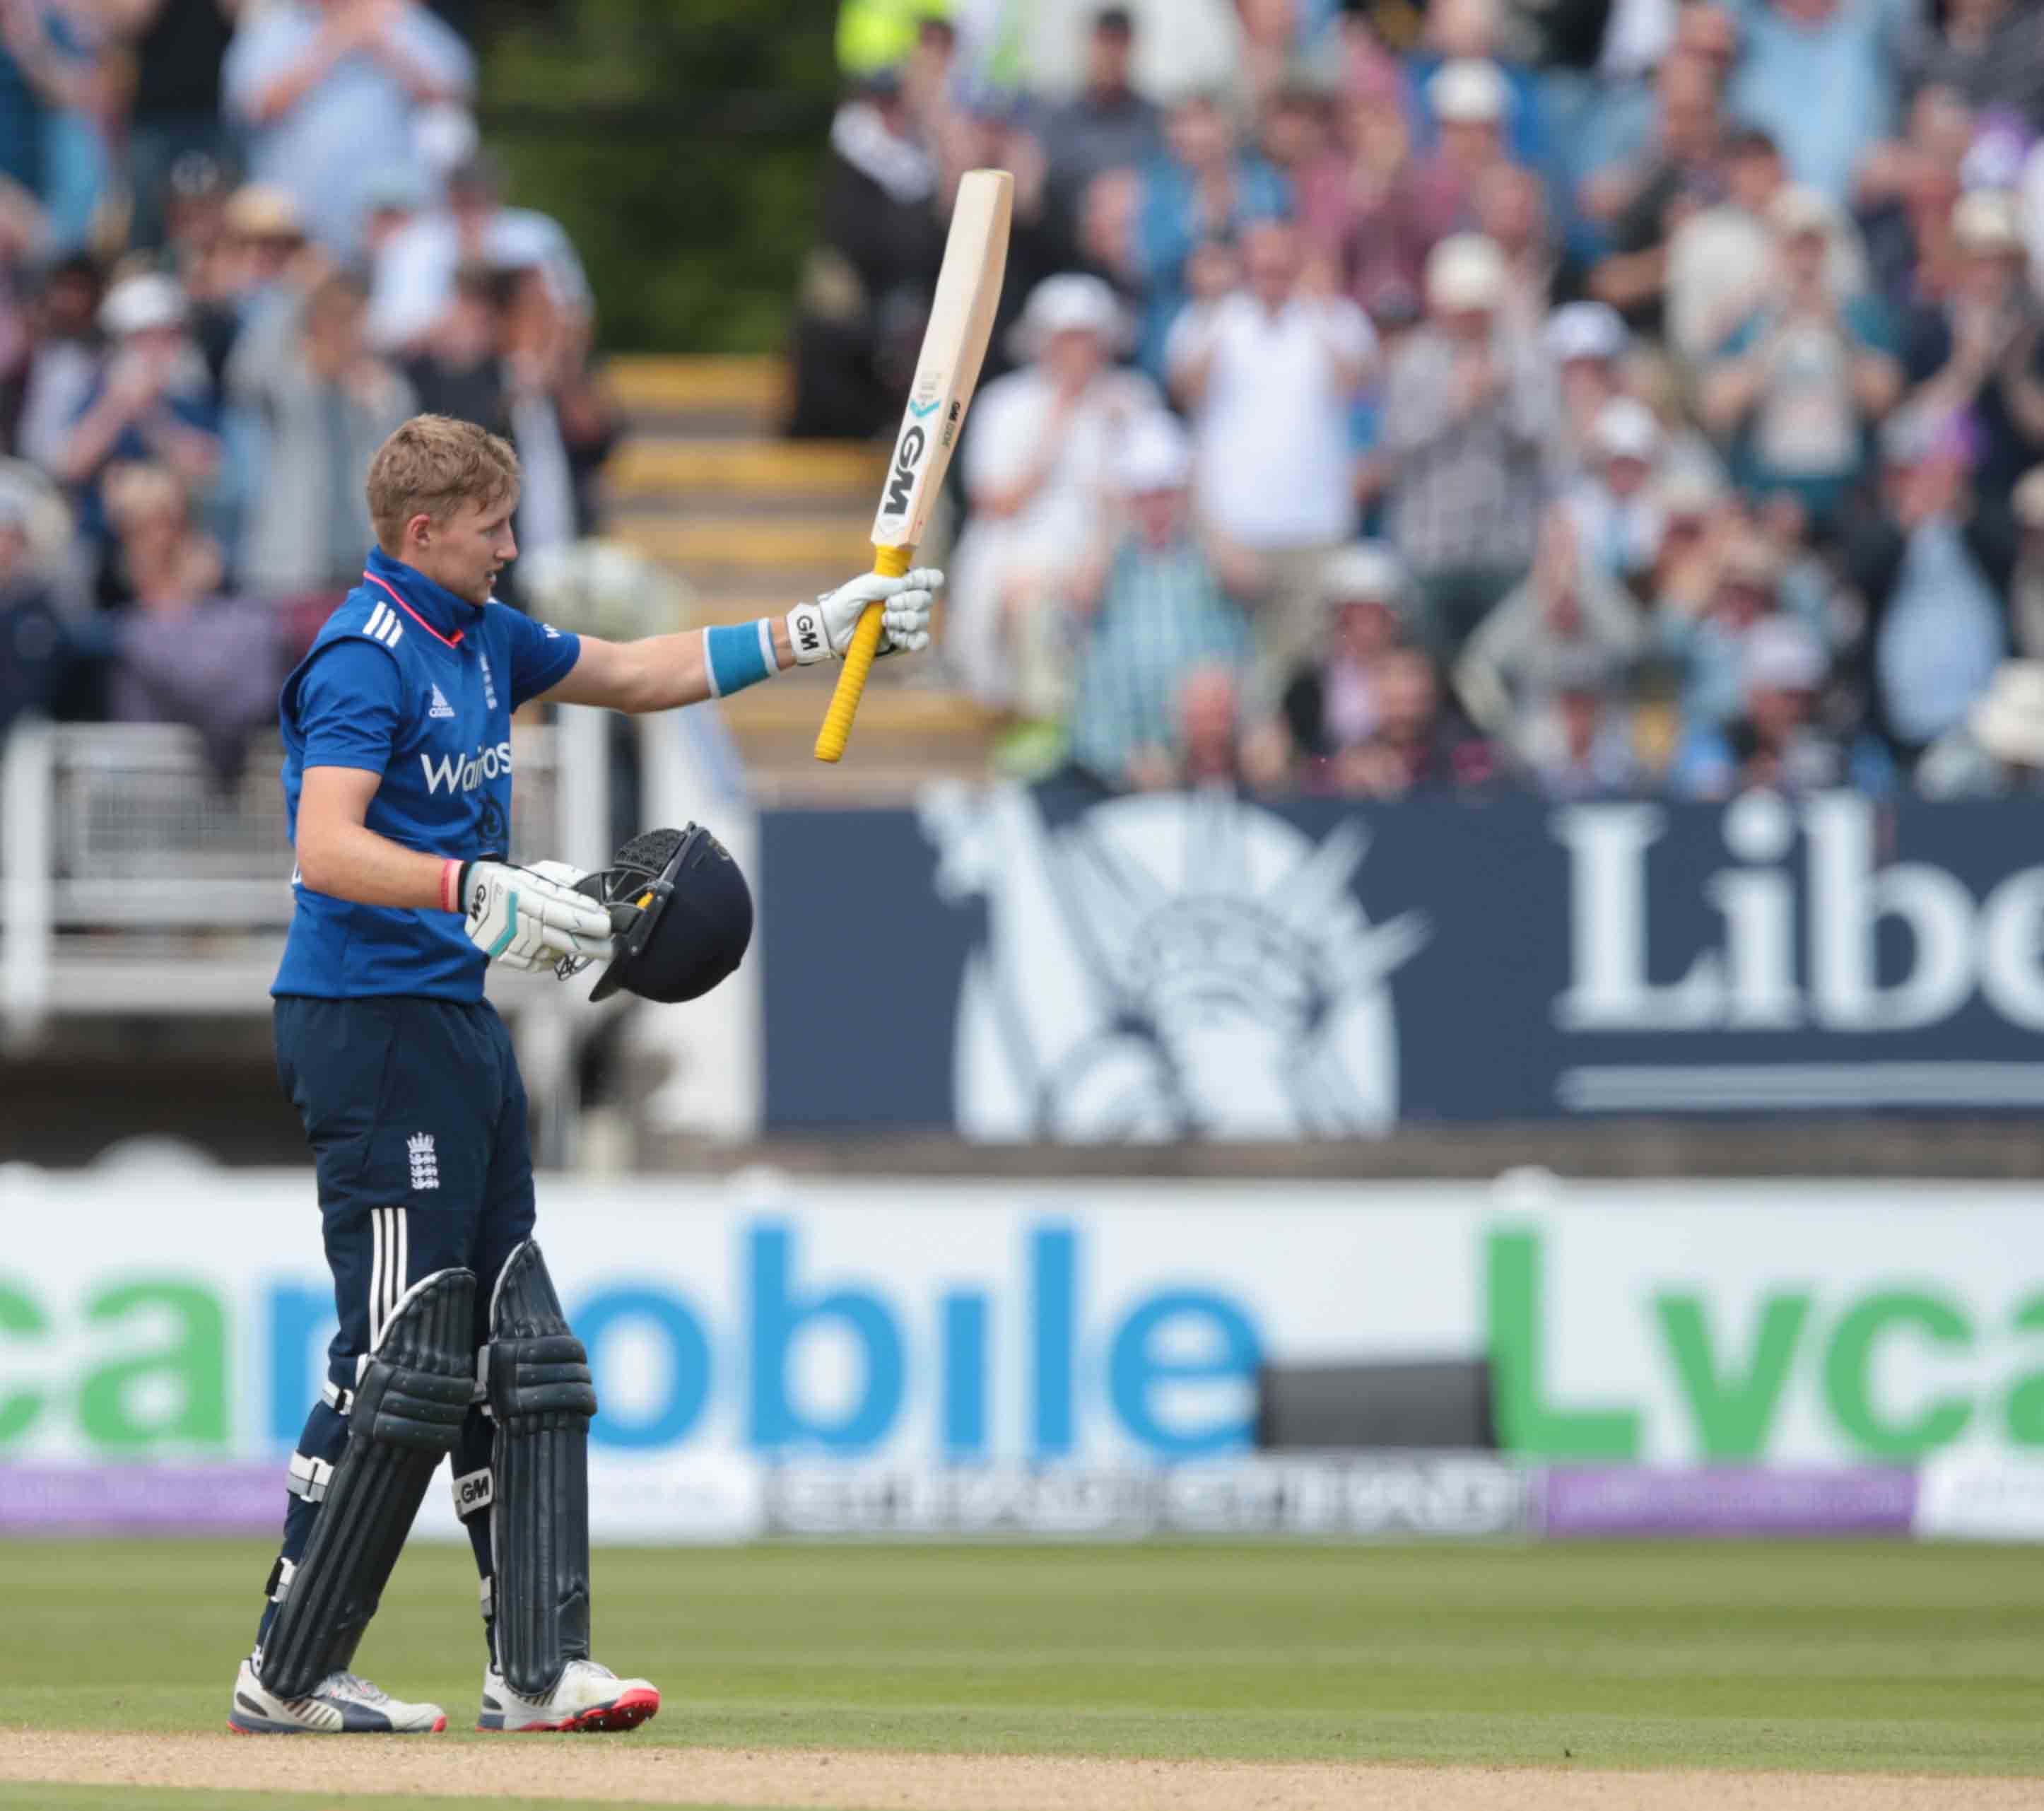 Joe Root of England celebrates his 100 during the Royal London One Day Series match at Edgbaston, Birmingham Picture by Michael Whitefoot/Focus Images Ltd 07969 898192 09/06/2015